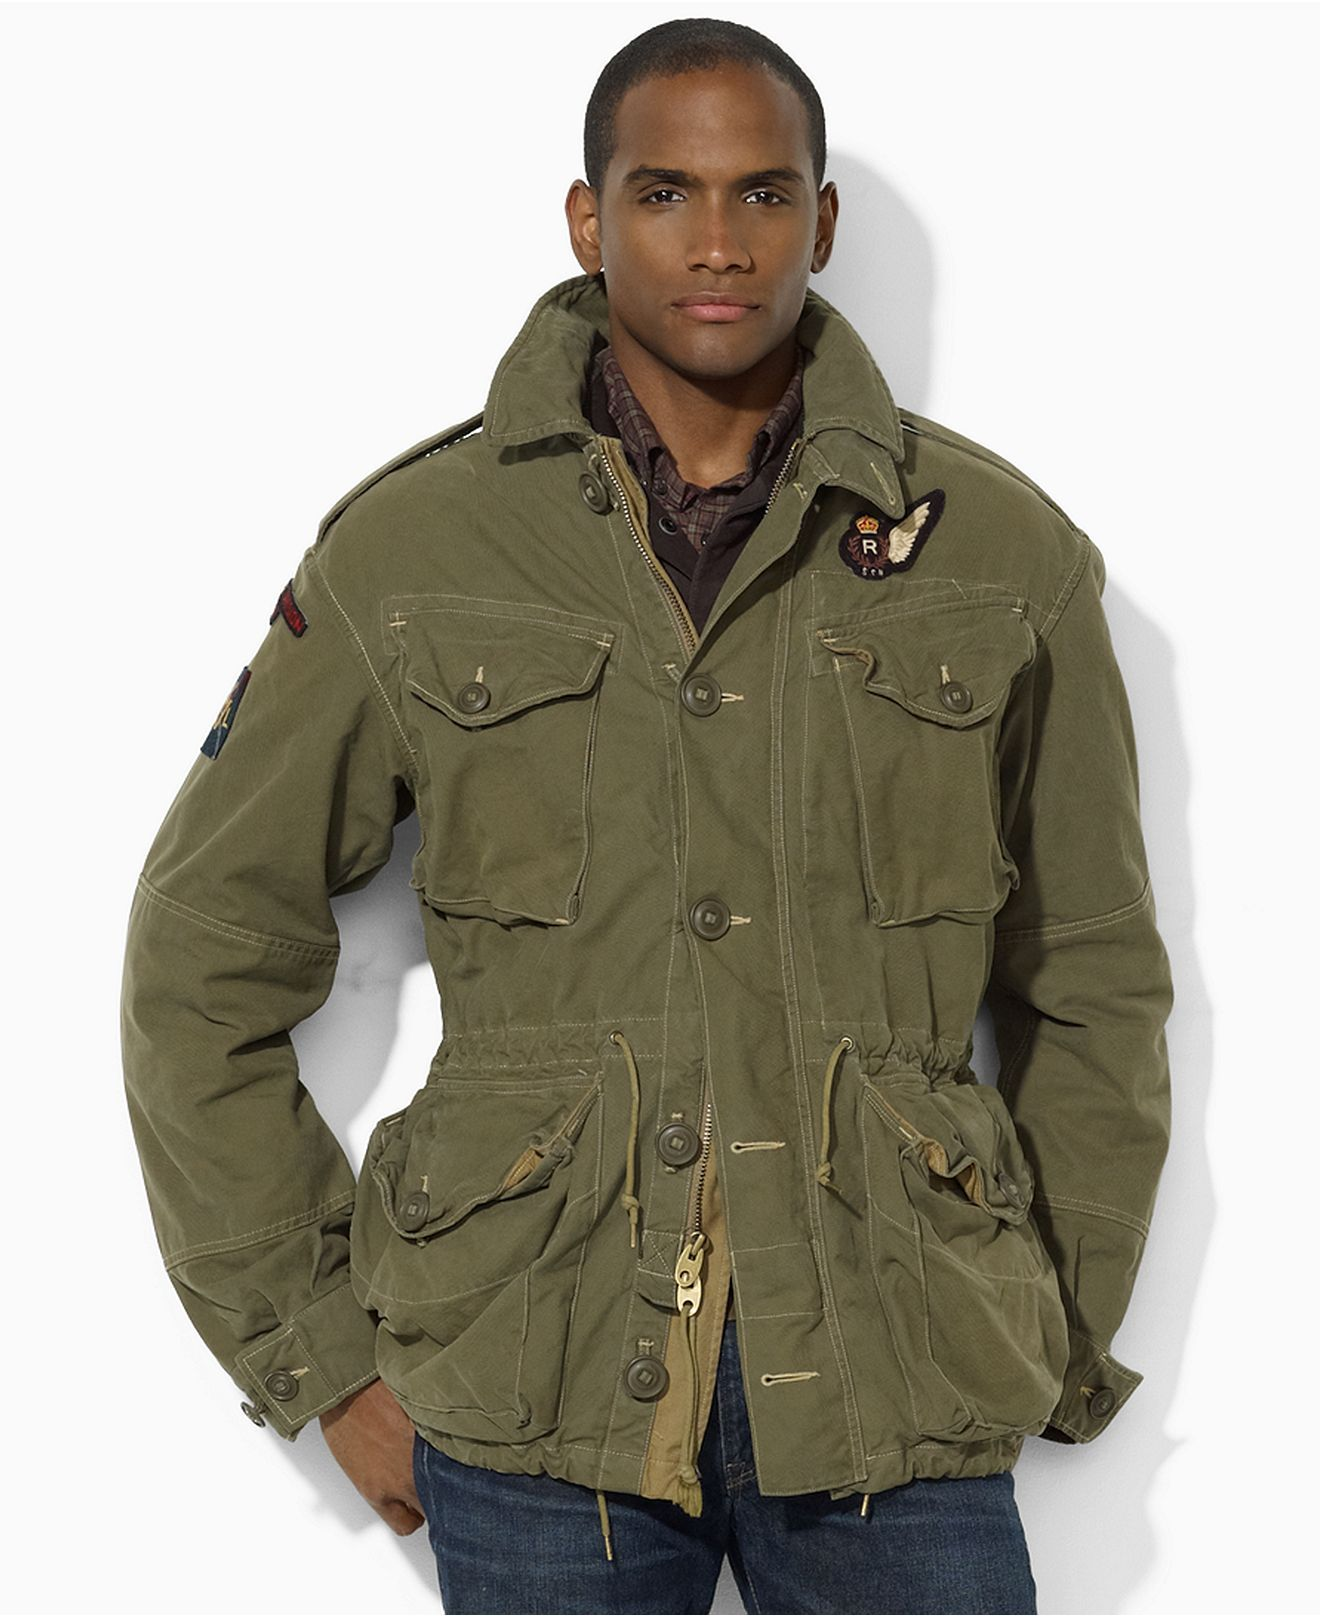 5c088ced7 Polo Ralph Lauren Jacket, Military Combat Jacket at Macy's ...